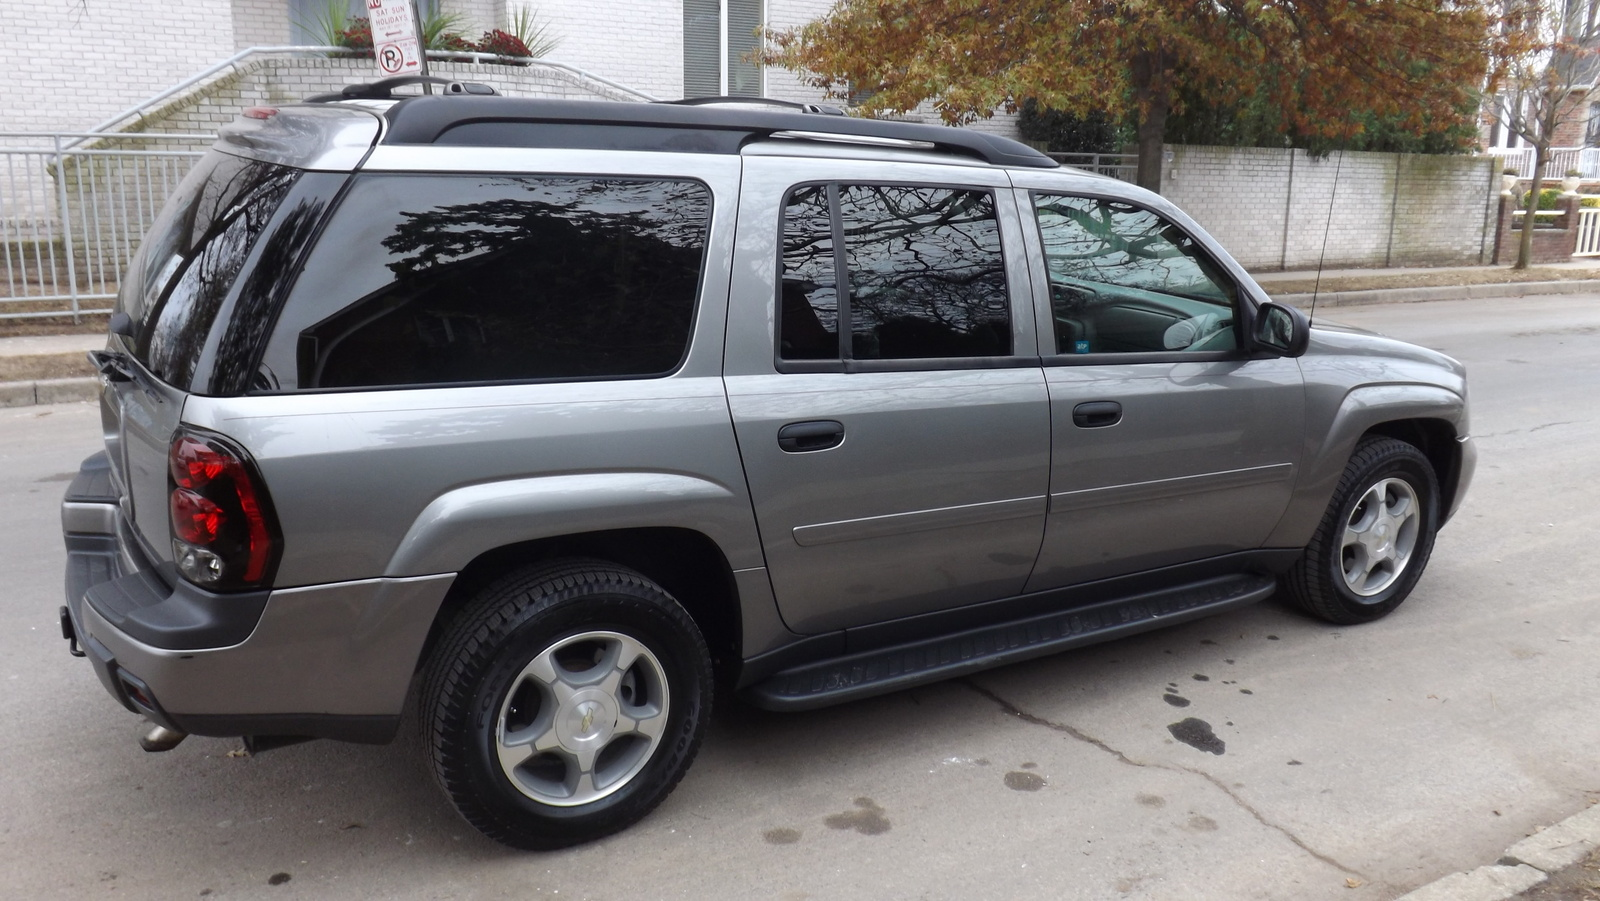 2006 Chevrolet TrailBlazer EXT #10 Chevrolet TrailBlazer EXT #10